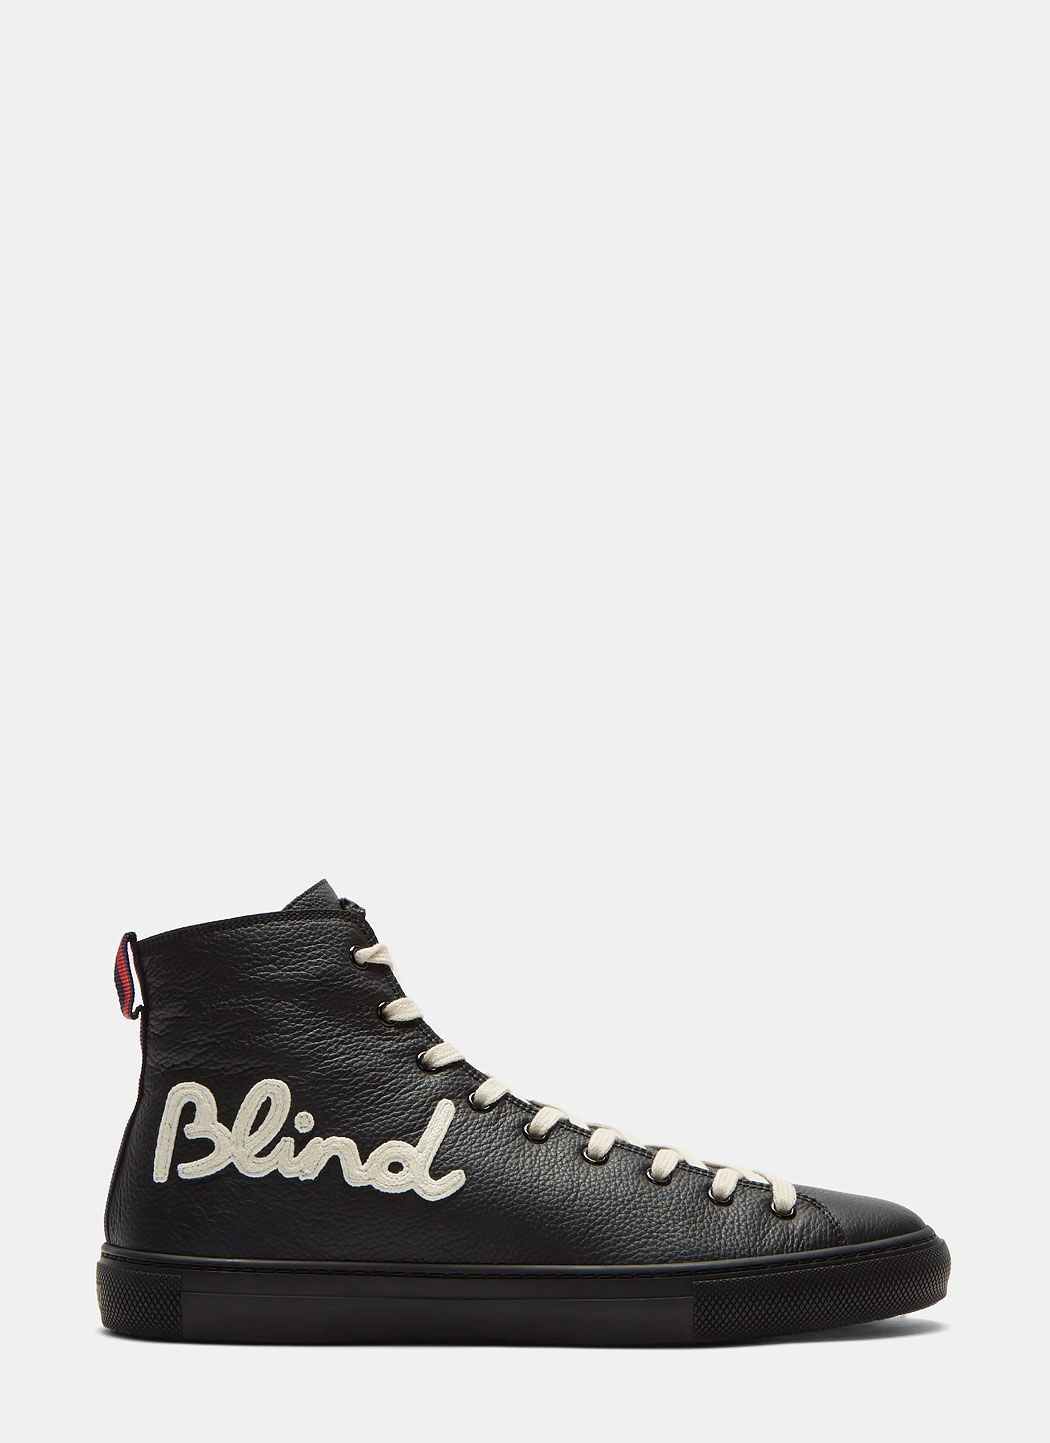 7f8caf9158ce GUCCI Blind For Love Embroidered High-Top Sneakers In Black.  gucci  shoes